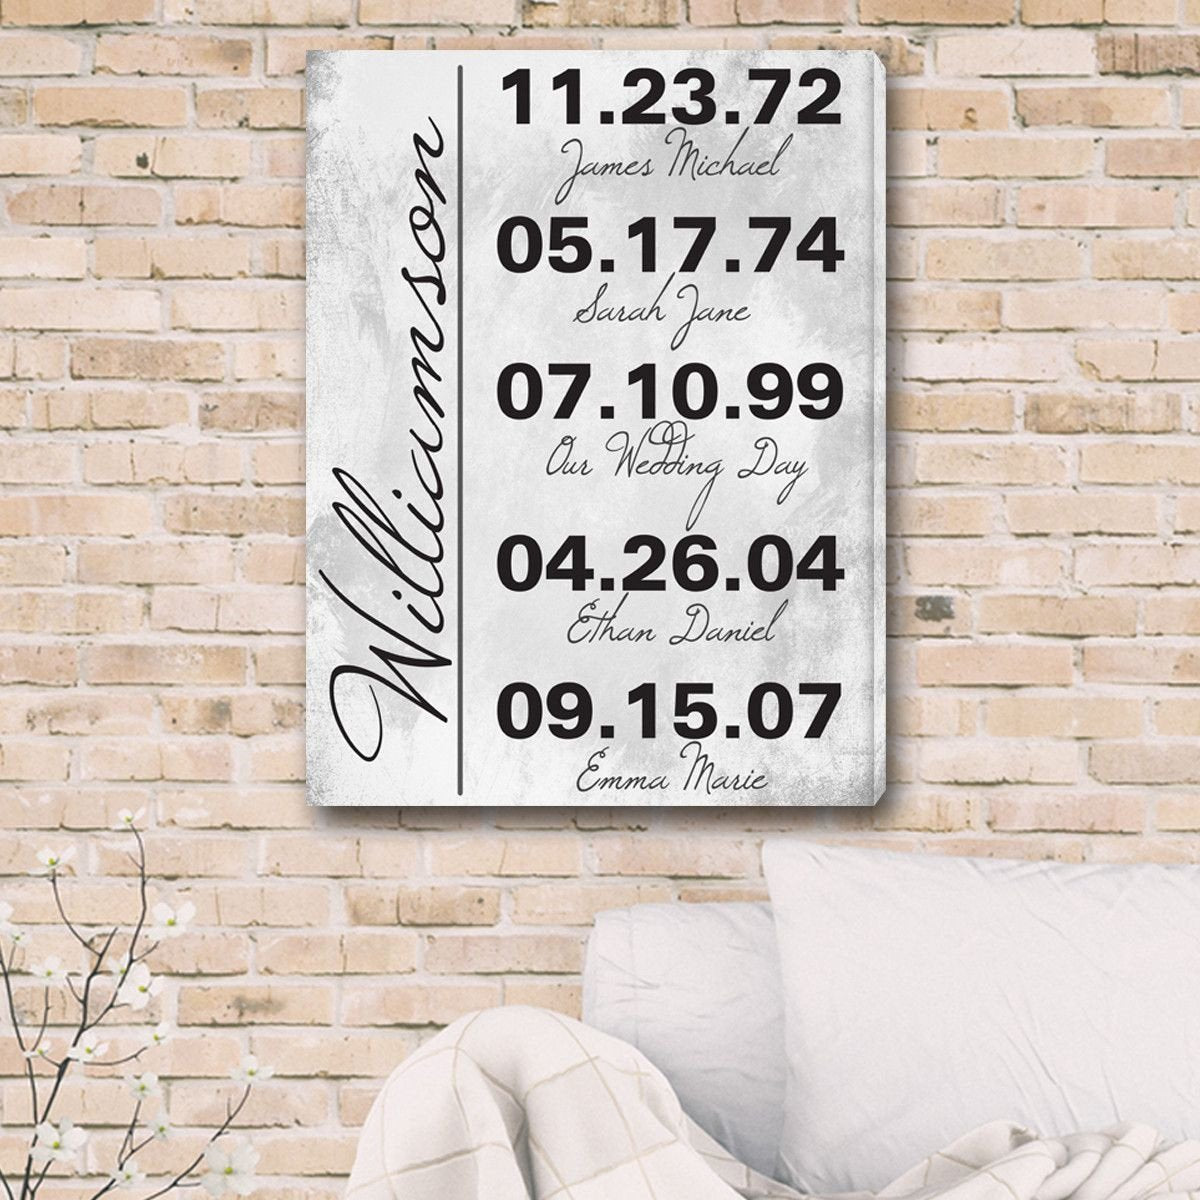 Memorable-Dates-in-Life-Personalized-Canvas-Print